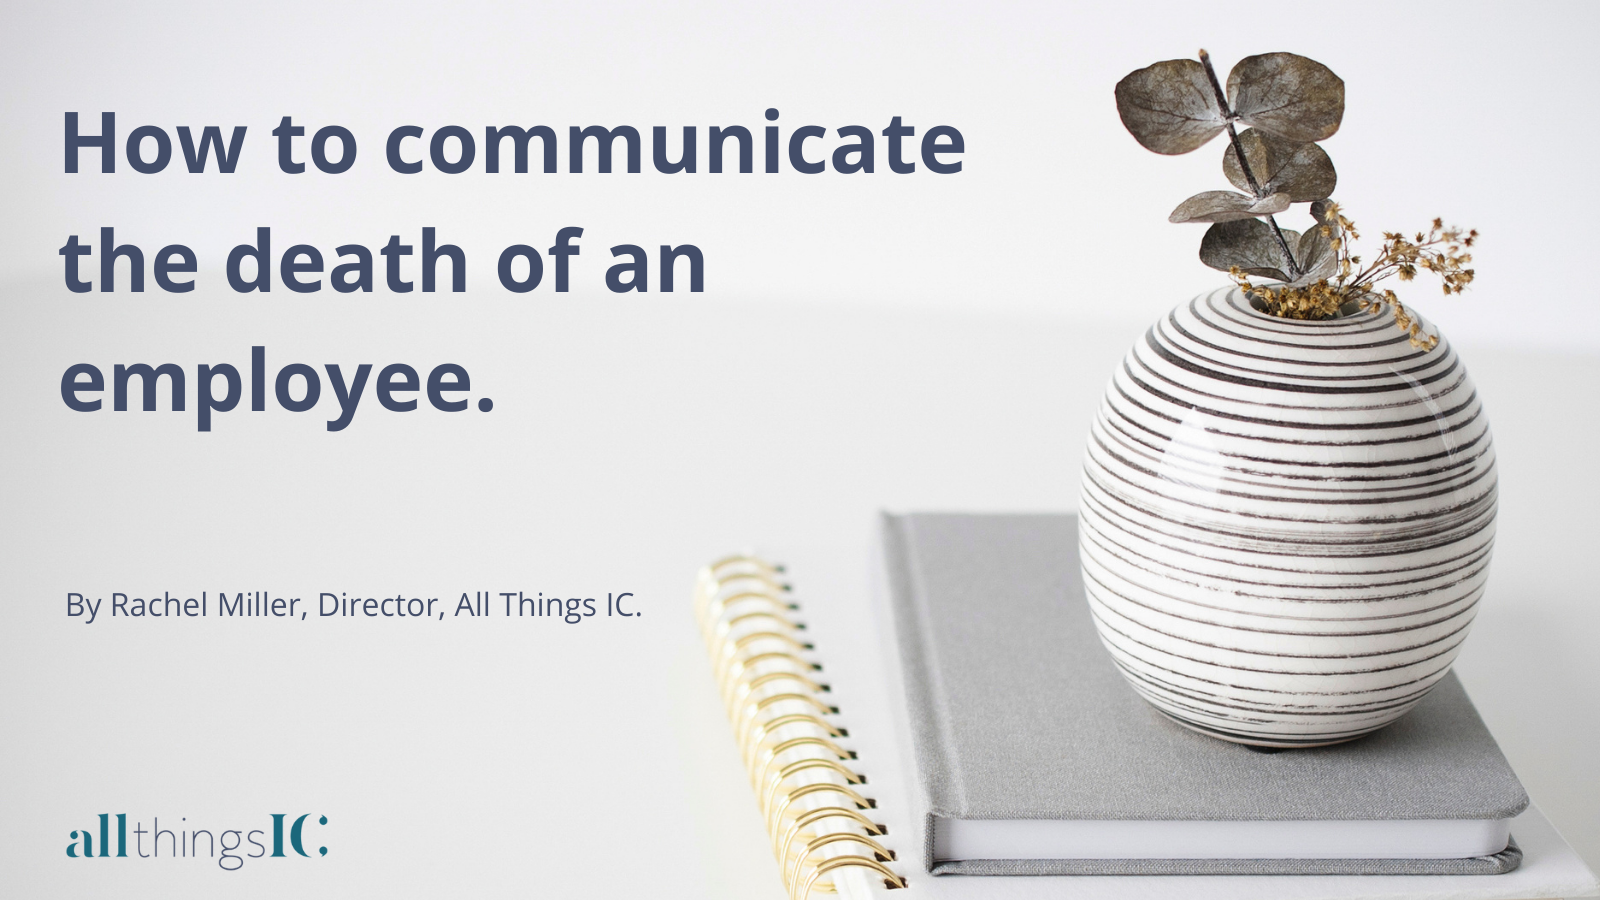 How to communicate the death of an employee